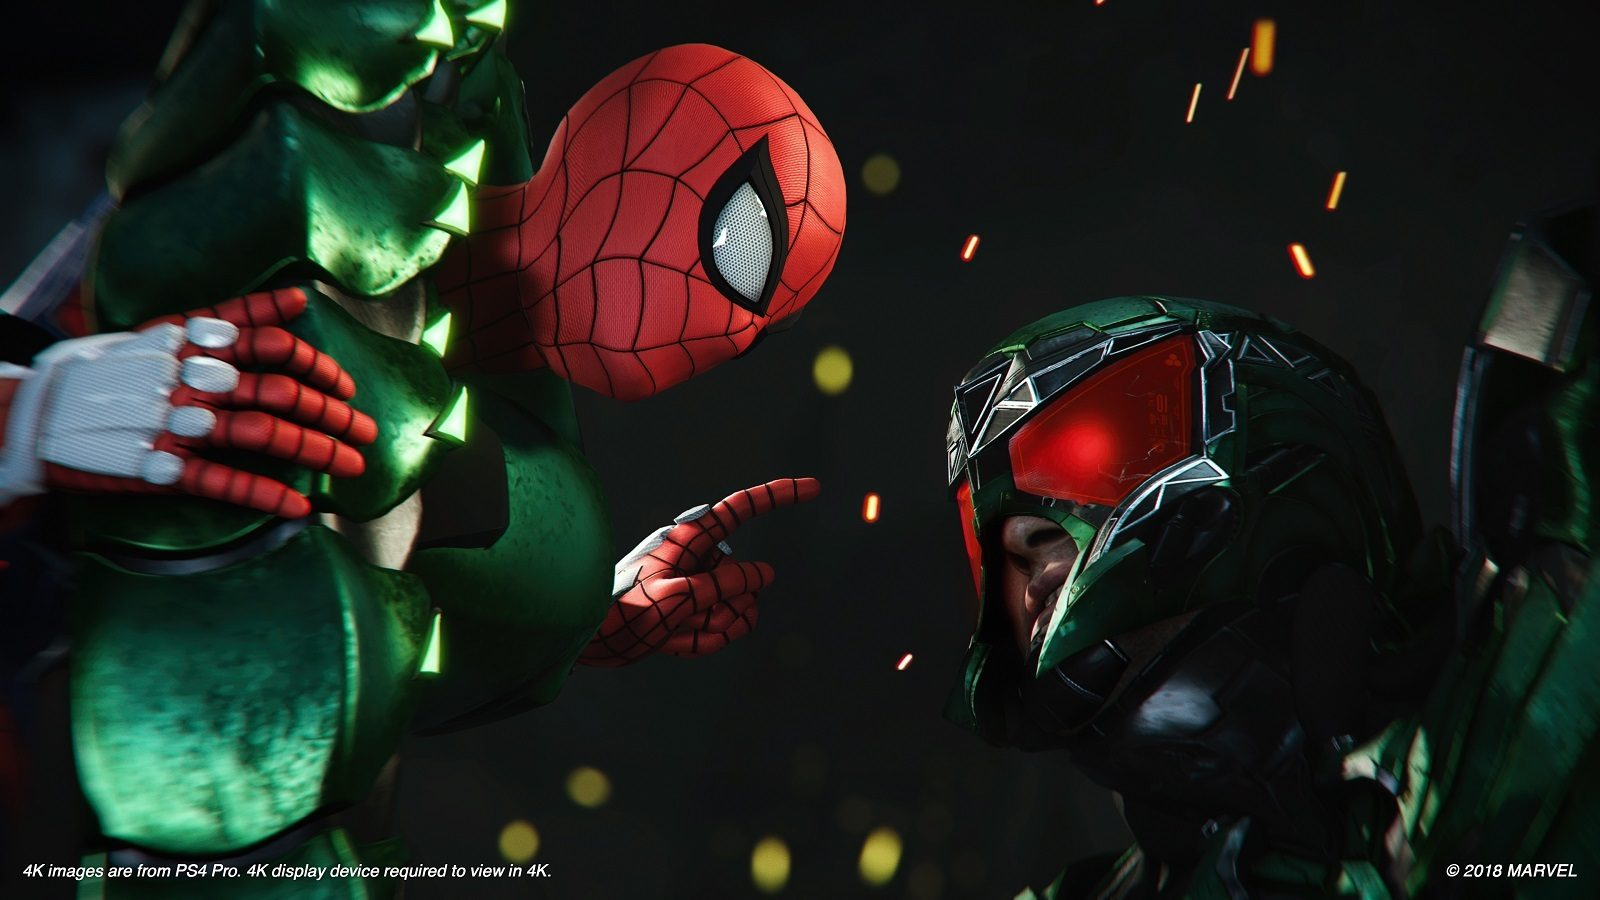 Insomniac Games Releases Two New Patches for Marvel's Spider-Man